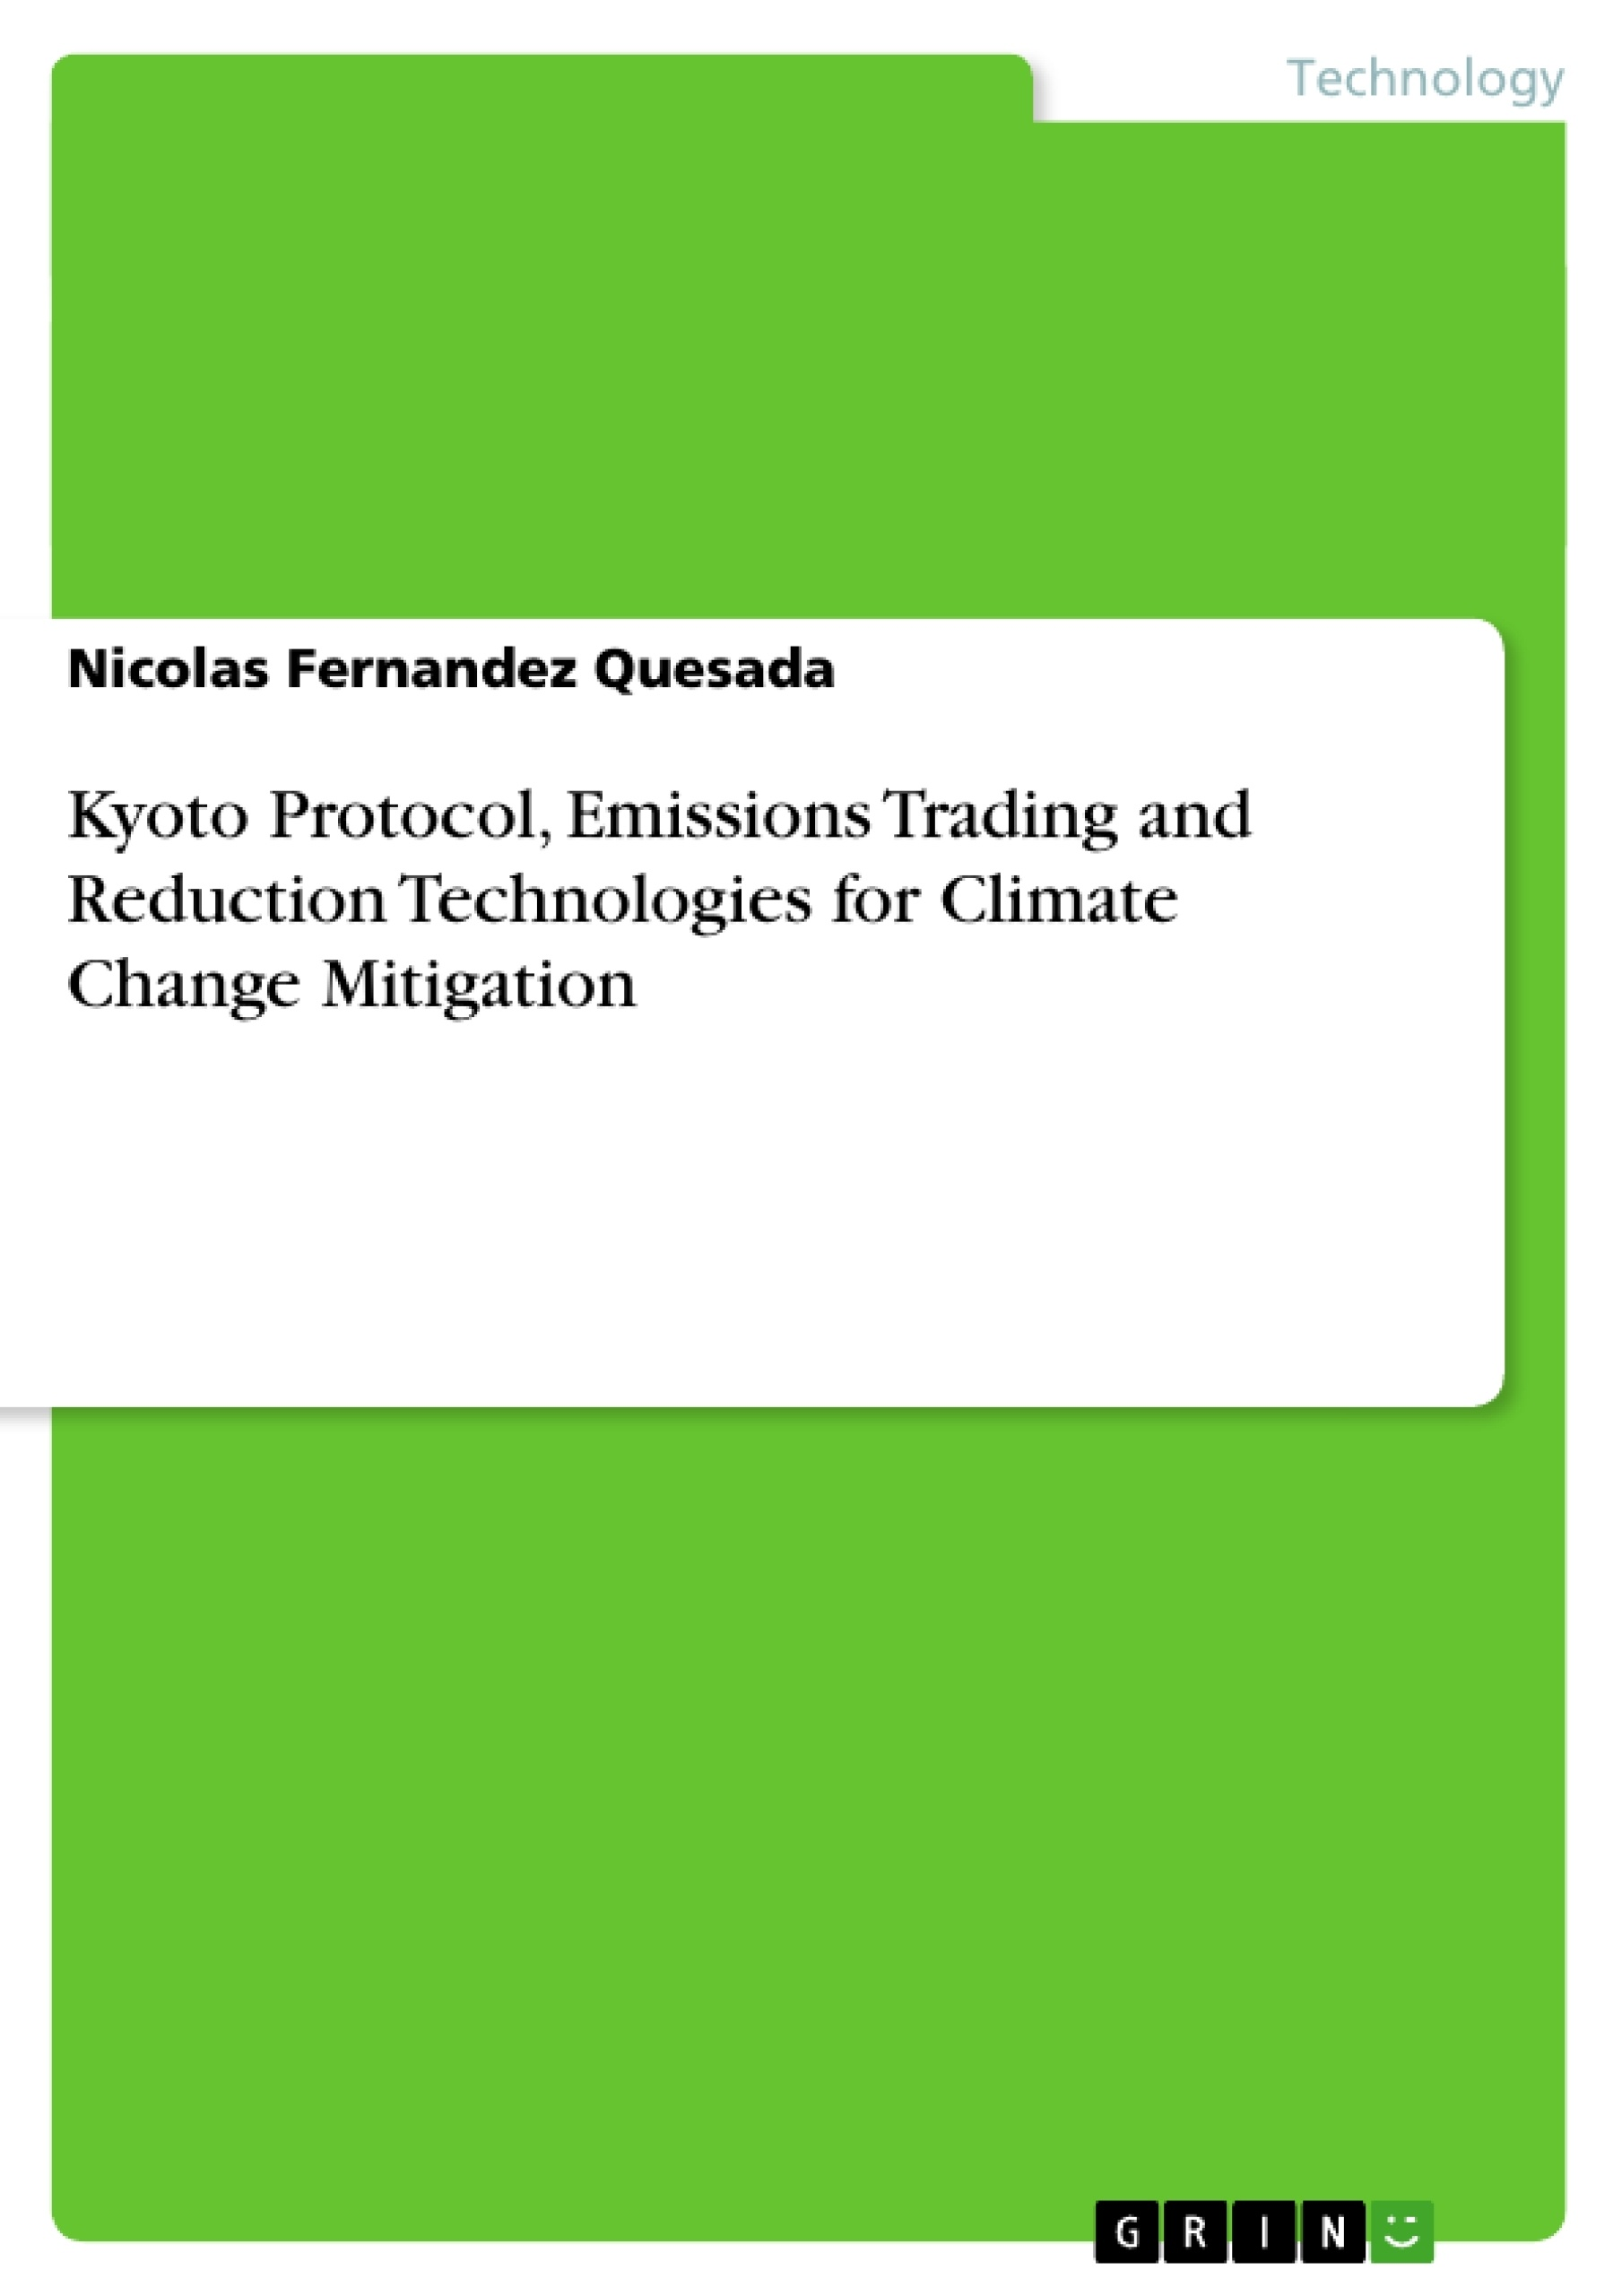 Title: Kyoto Protocol, Emissions Trading and Reduction Technologies for Climate Change Mitigation